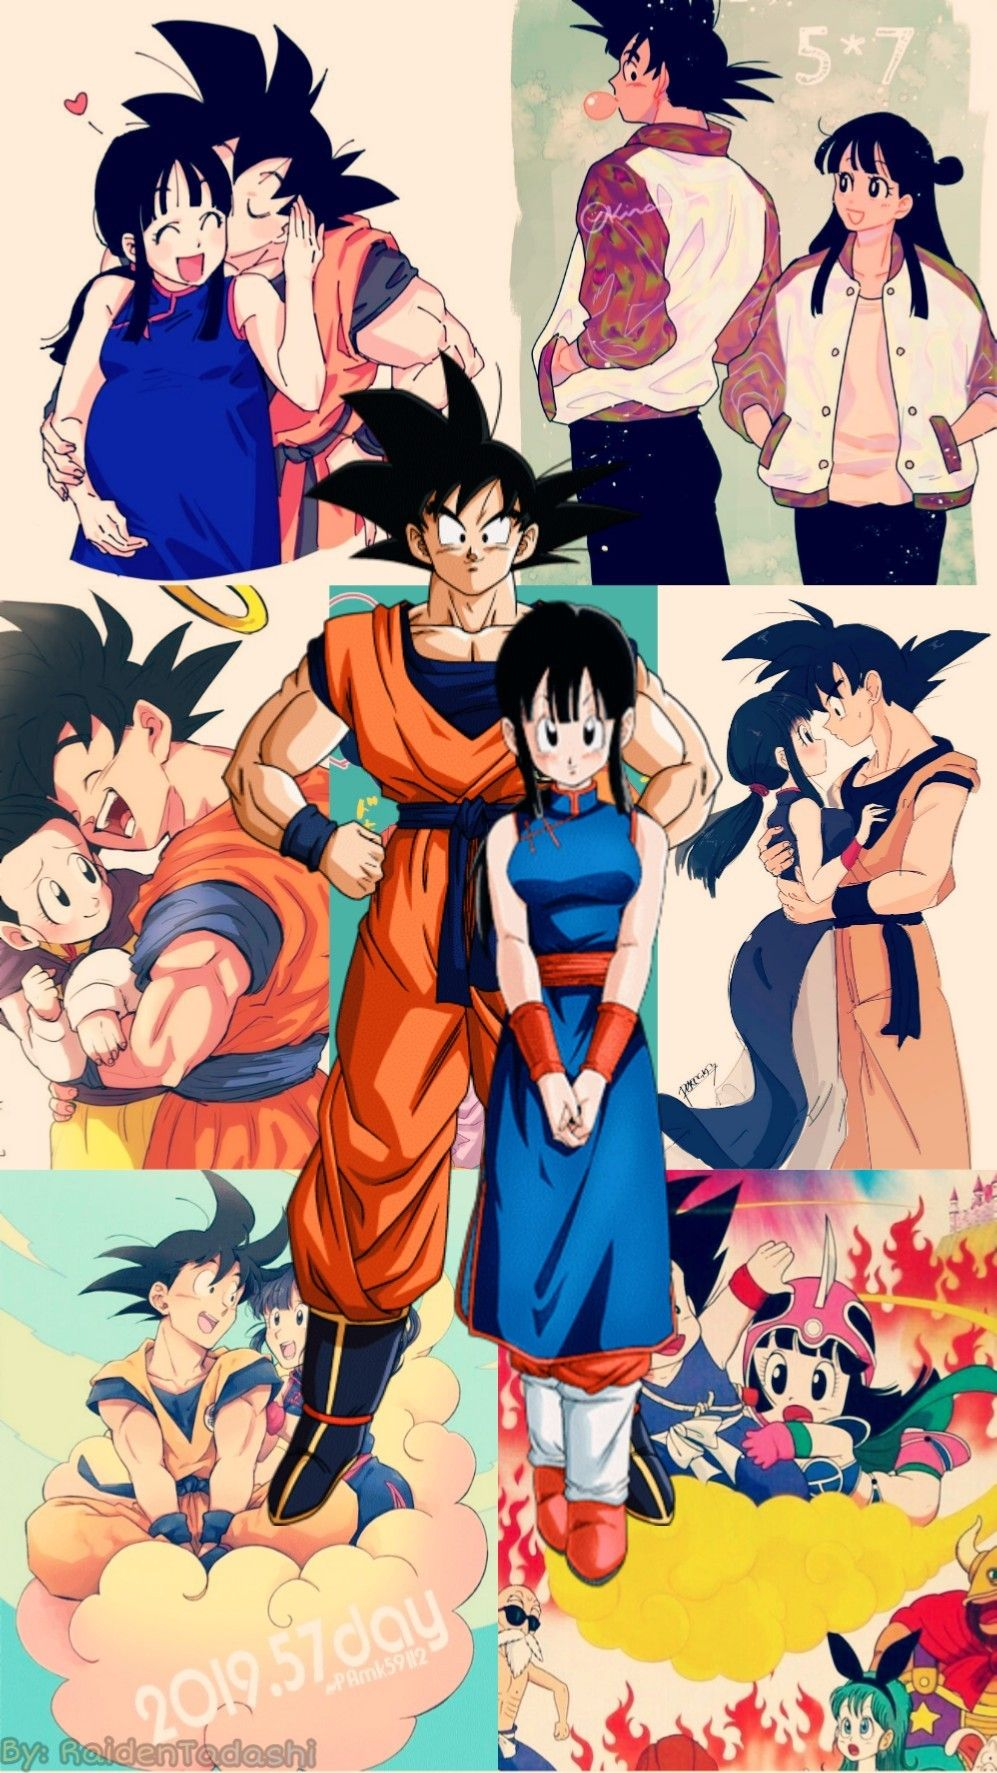 Wallpaper Gochi For Alishba All Credit To The Authors Of Fanart In Background Anime Dragon Ball Super Dragon Ball Art Dragon Ball Artwork